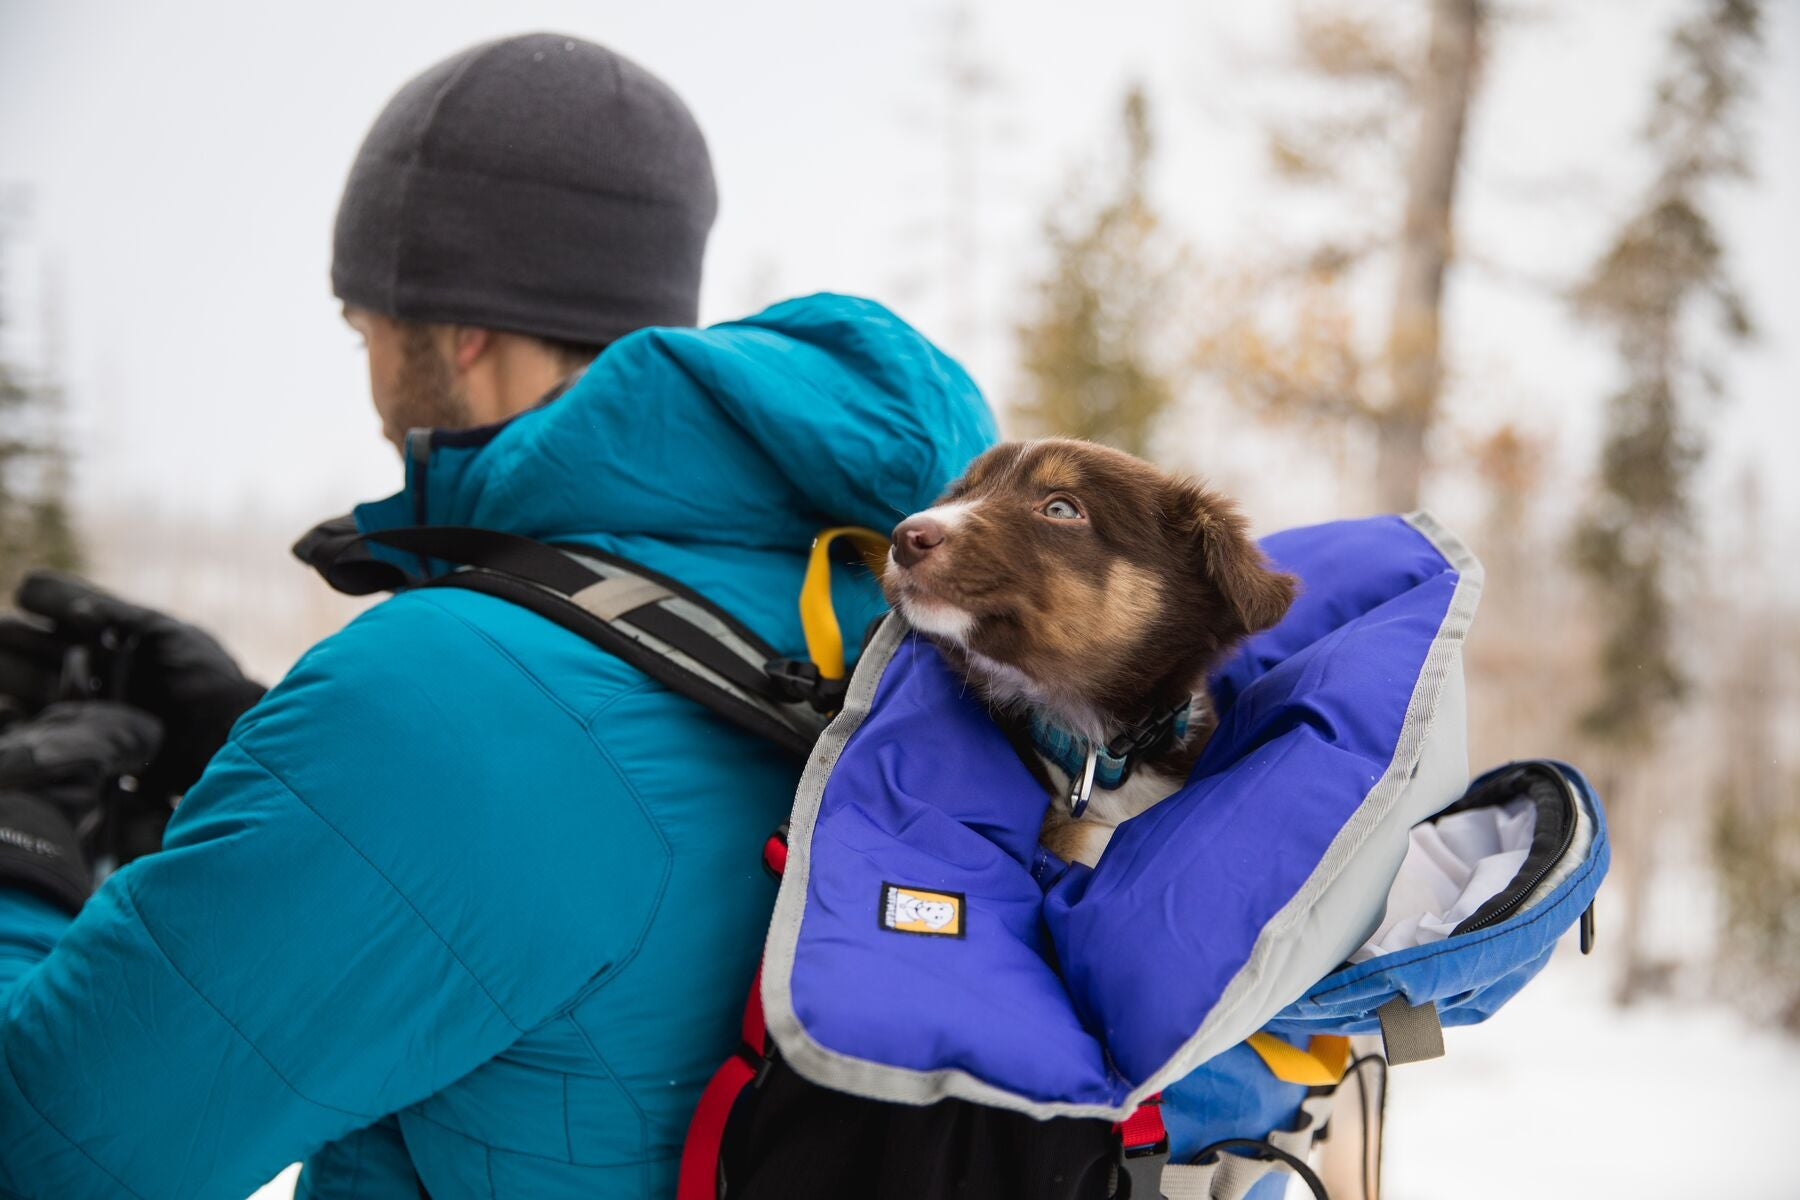 Puppy wrapped in clear lake blanket carried in backpack.